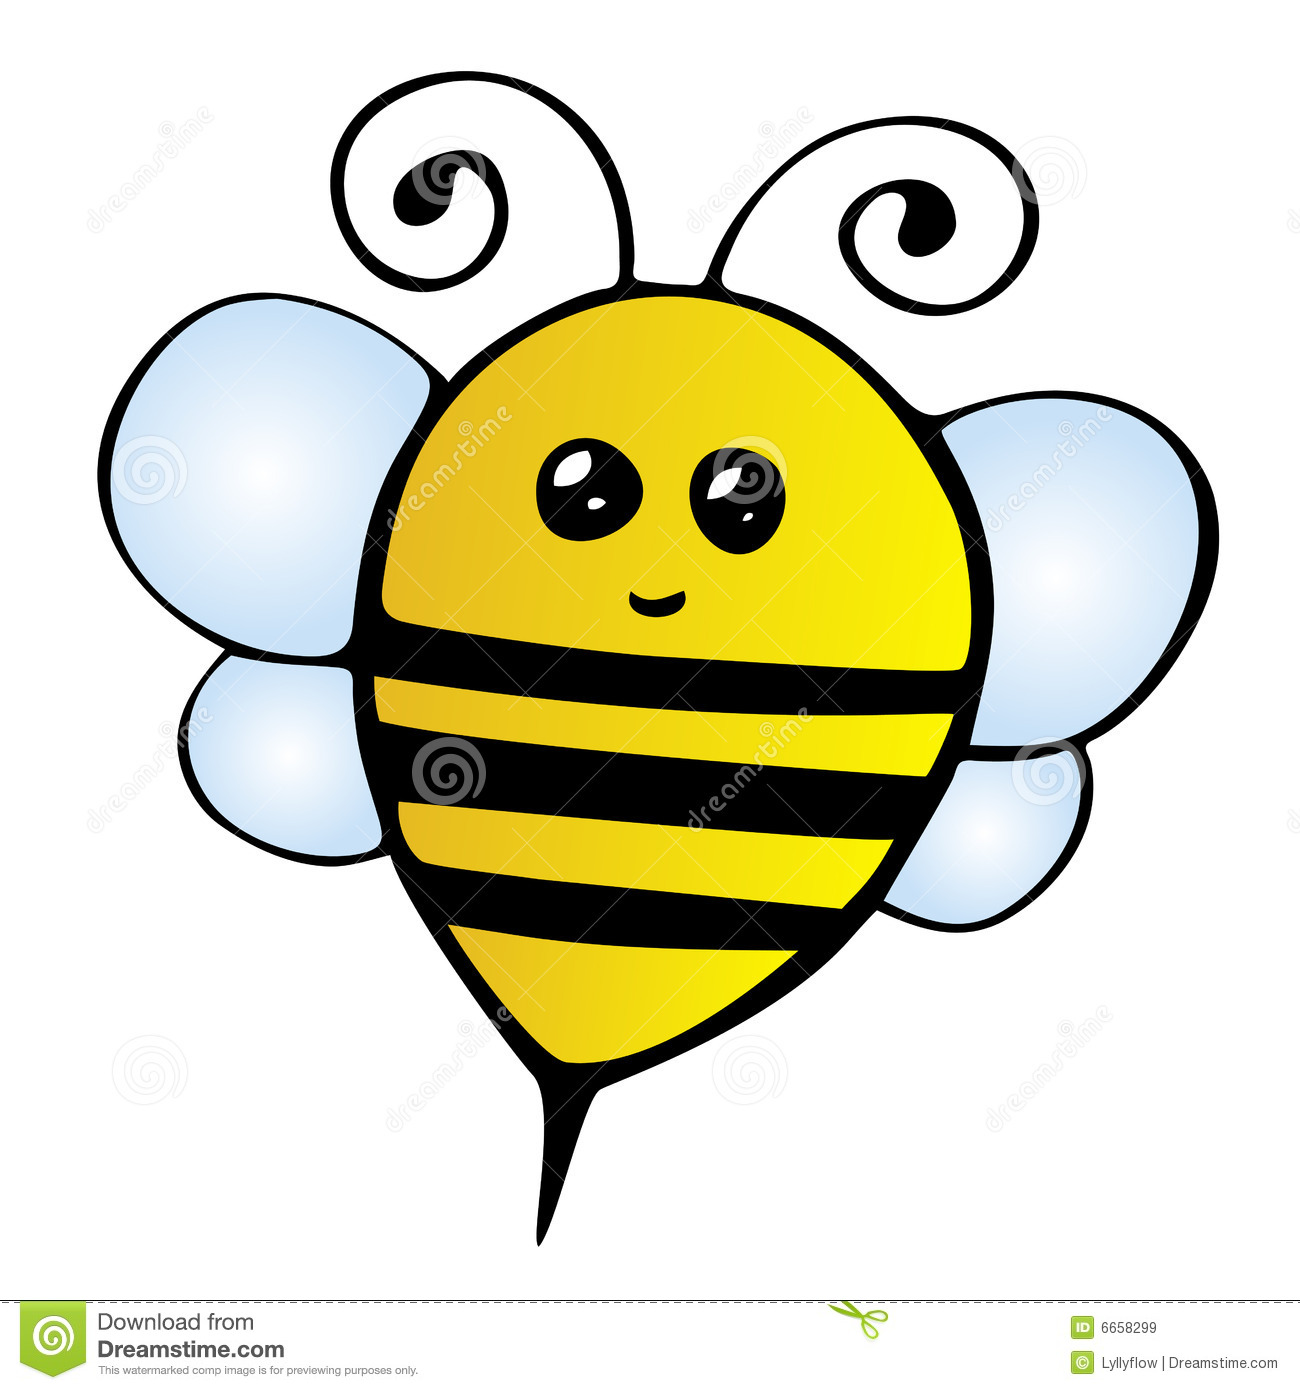 Cute Bee Clipart - Clipart Kid